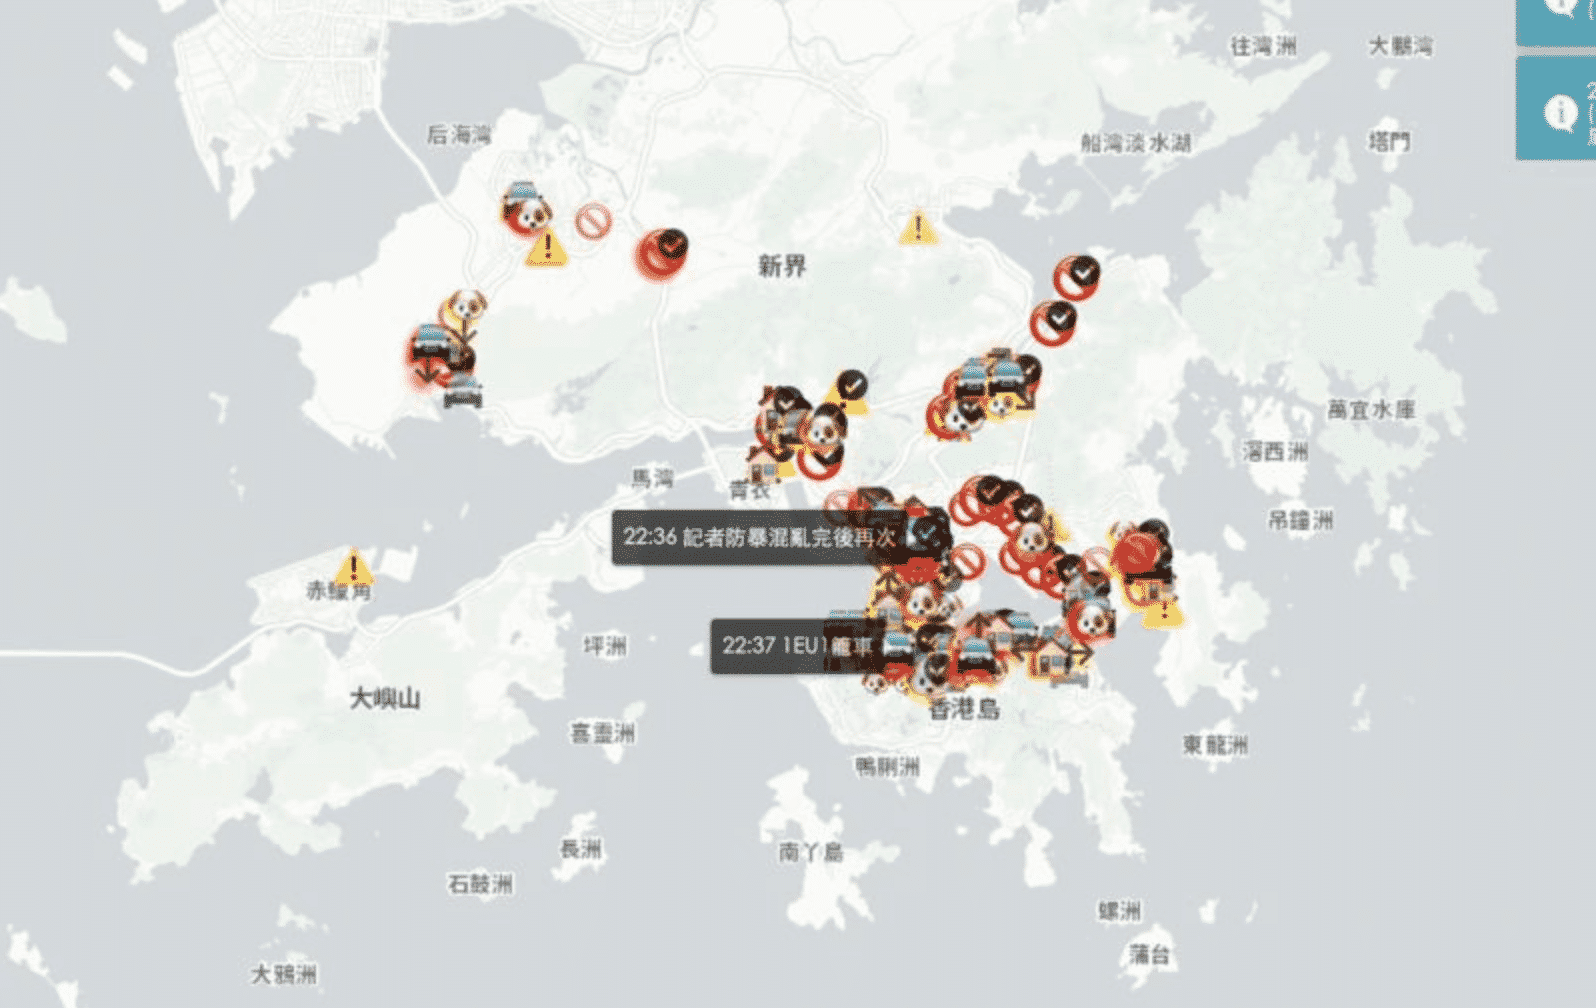 HKmap Live App Reinstatement Requested by US Lawmakers